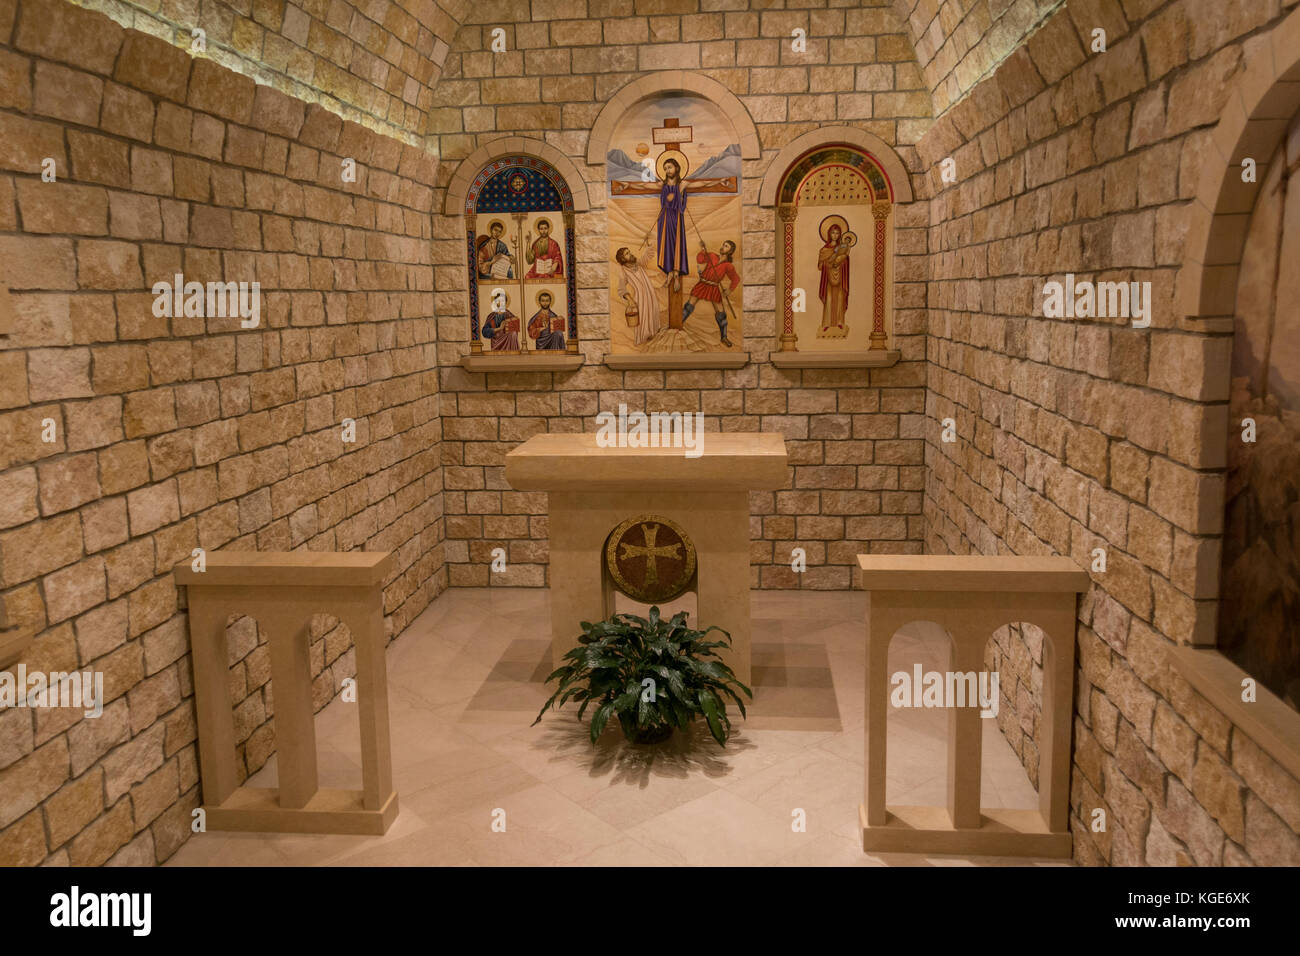 Our Lady of Lebanon Chapel inside the Basilica of the National Shrine of the Immaculate Conception, Washington DC, Stock Photo